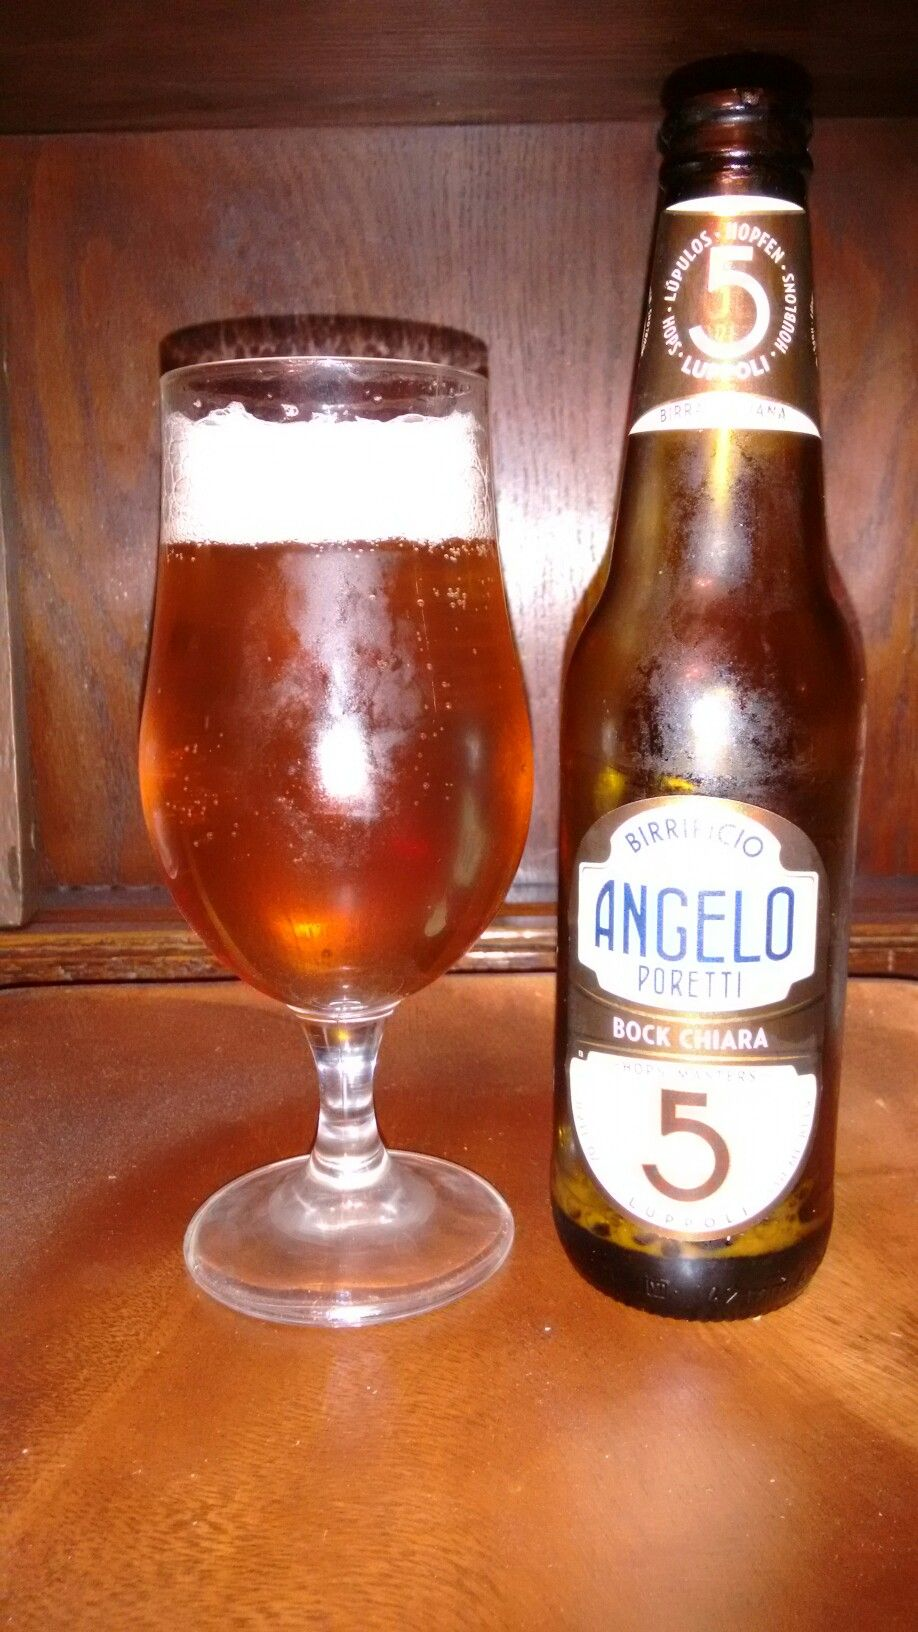 Birrificio Angelo Poretti Bock Chiara. An Italian Bock. The initial look and smell are great. Not a sweet as a usual Bock a little sharper but gives a real warming feeling a good 30 seconds after the sip.